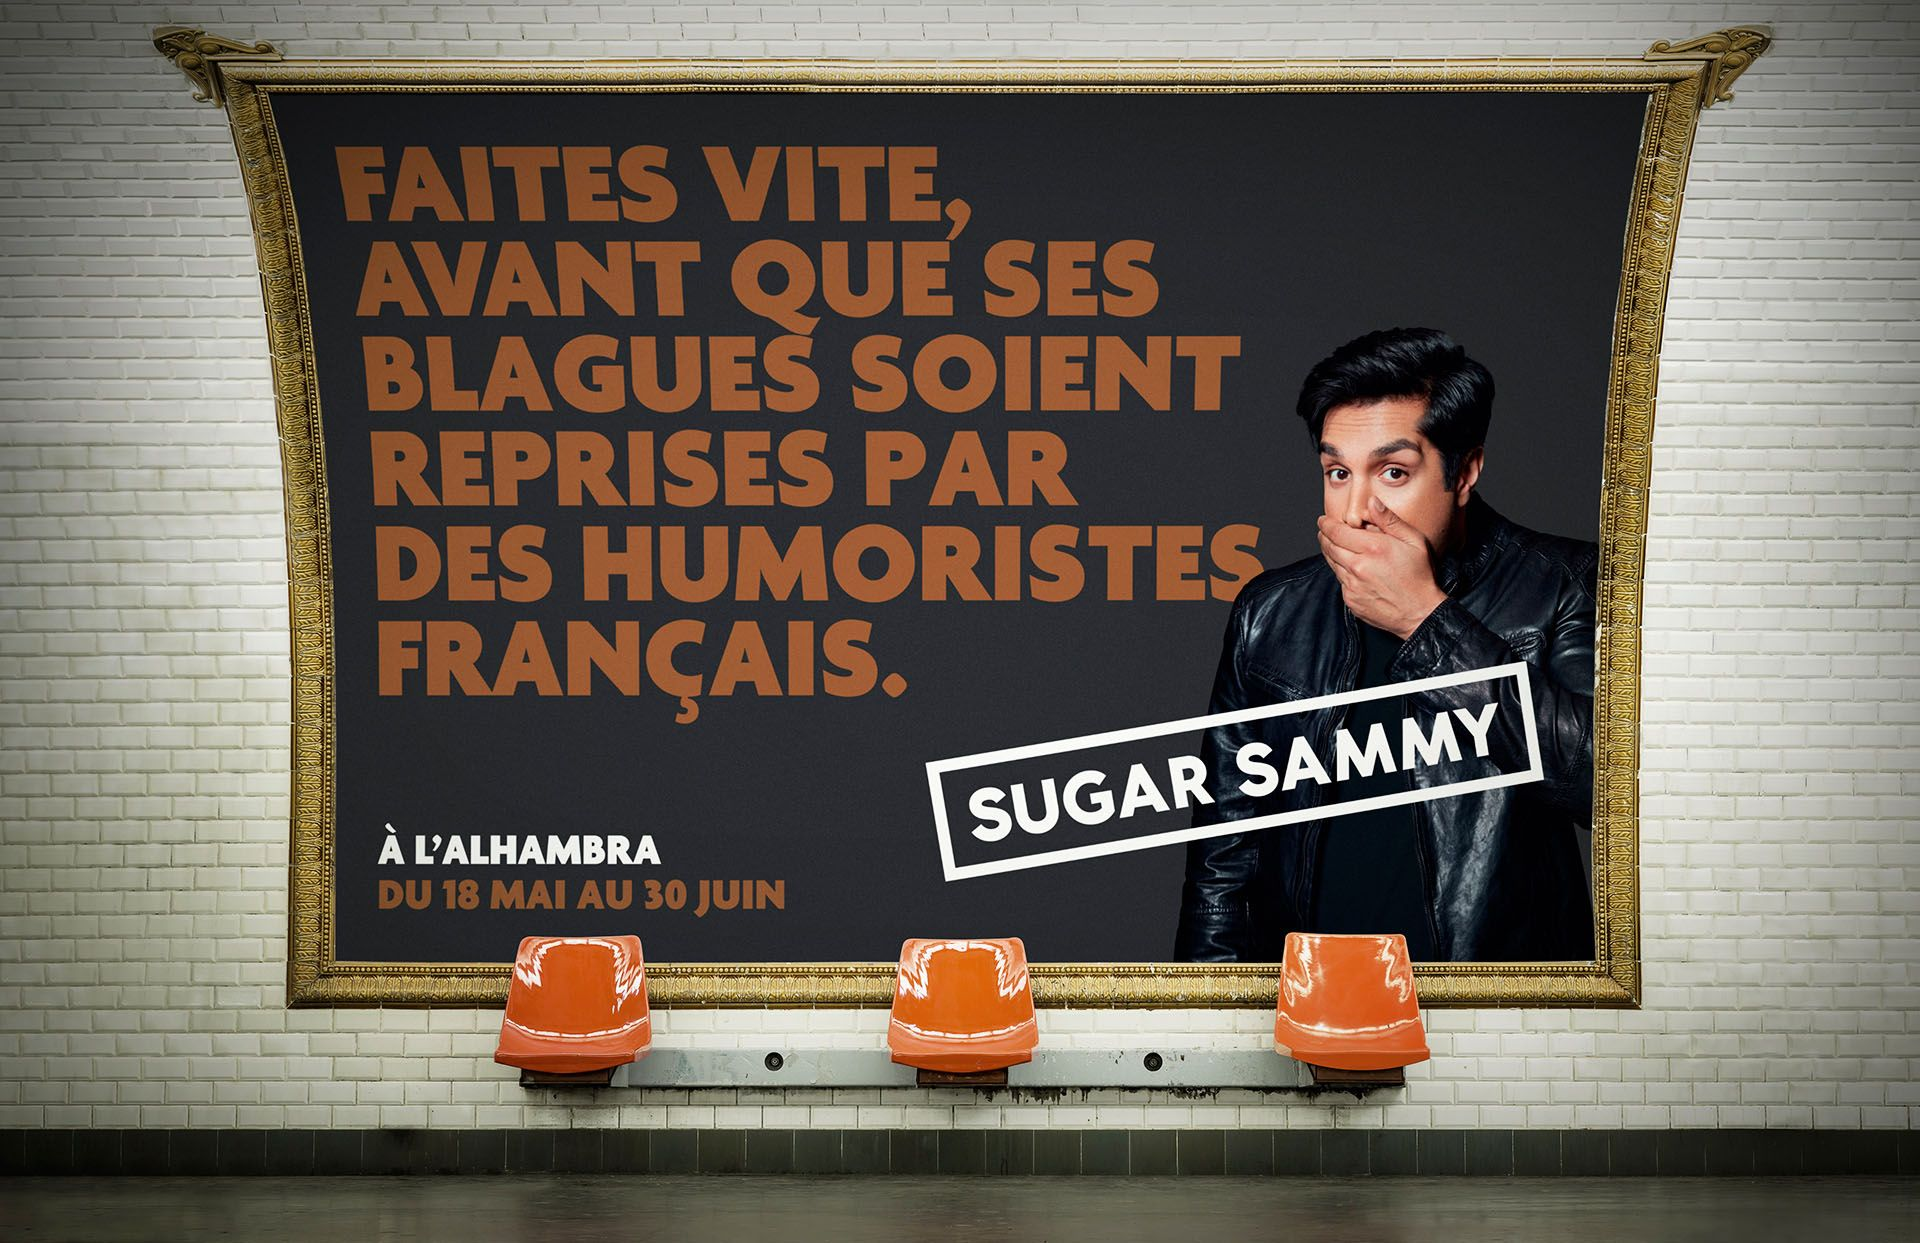 mockup of humorist Sugar Sammy show ad in metro